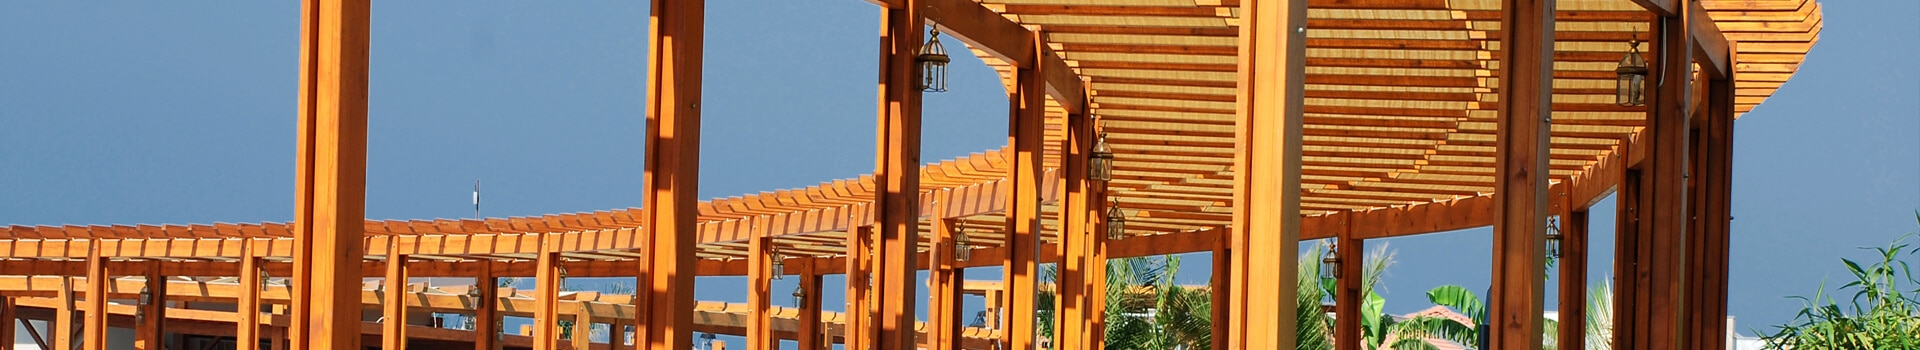 outdoor commercial pergola, made of quality wood